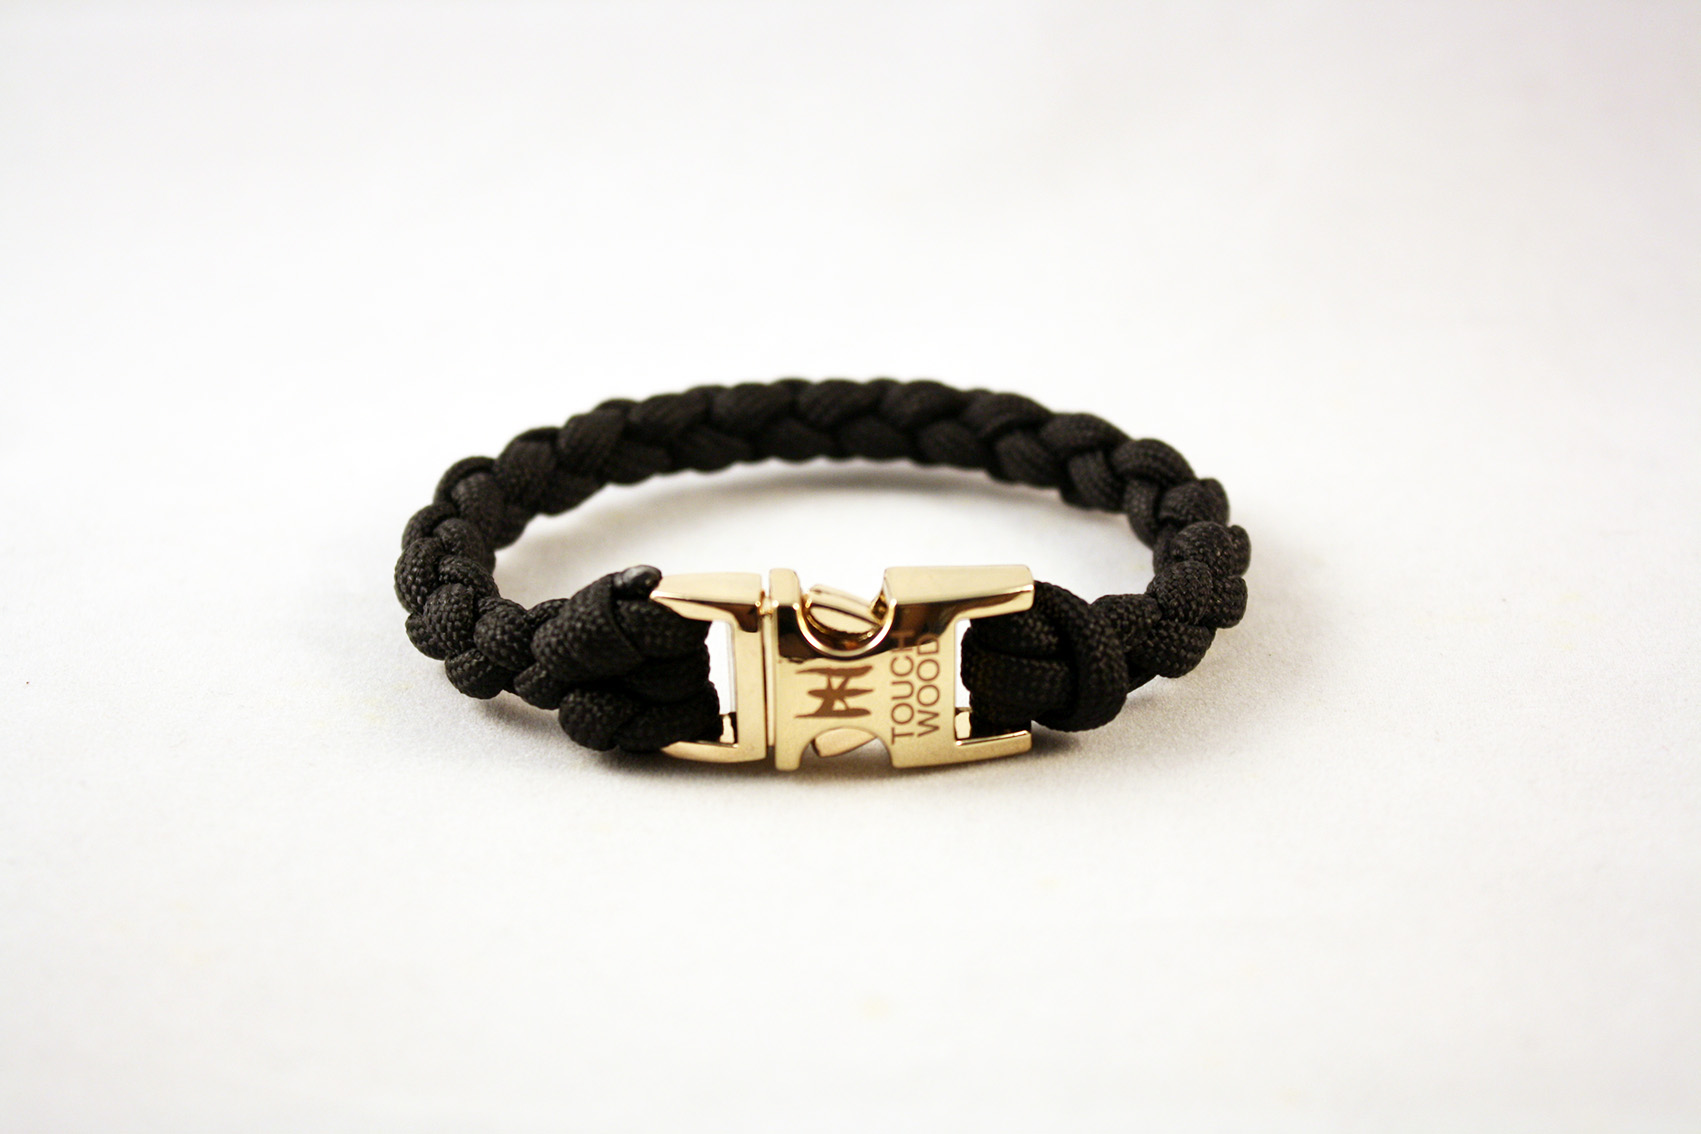 c mandala gold bracciale bracelet cuoio leather store nero black susyo azzurro official product en